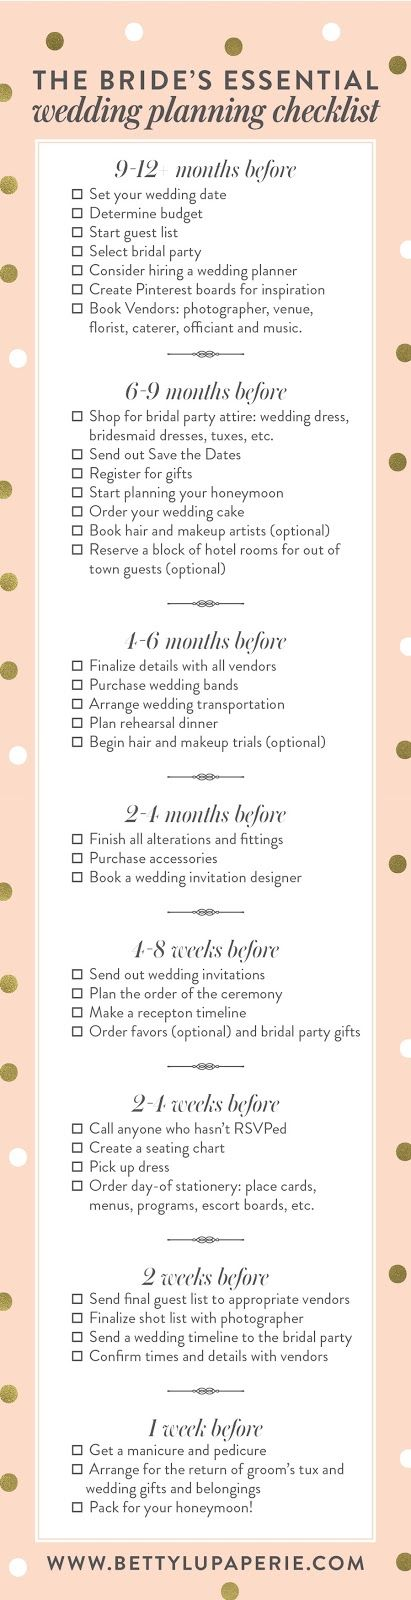 Best 25+ Wedding Checklists Ideas On Pinterest | Wedding Checklist